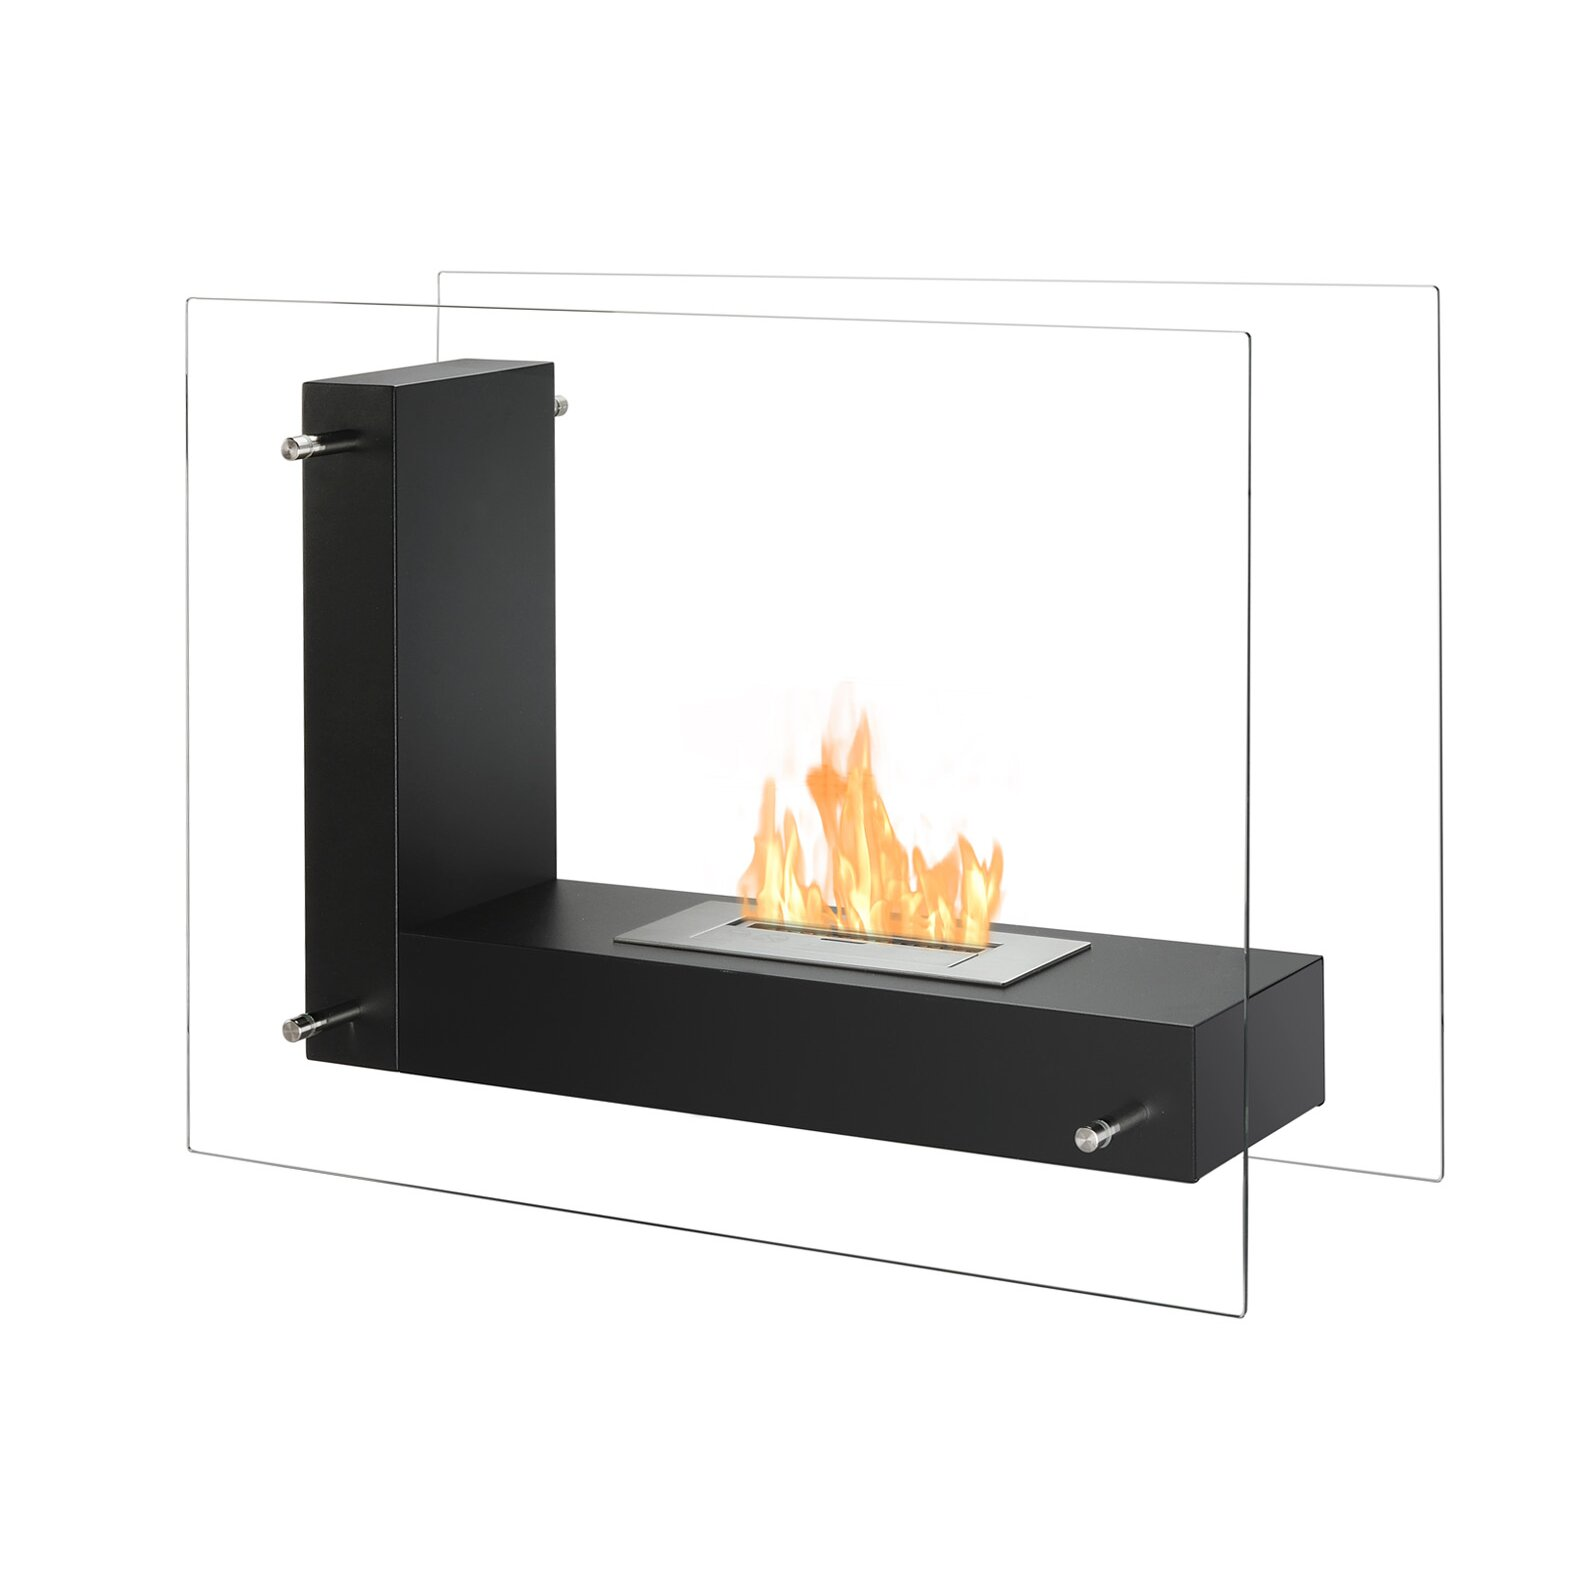 Ignis Vitrum L Freestanding Ventless Ethanol Fireplace Reviews